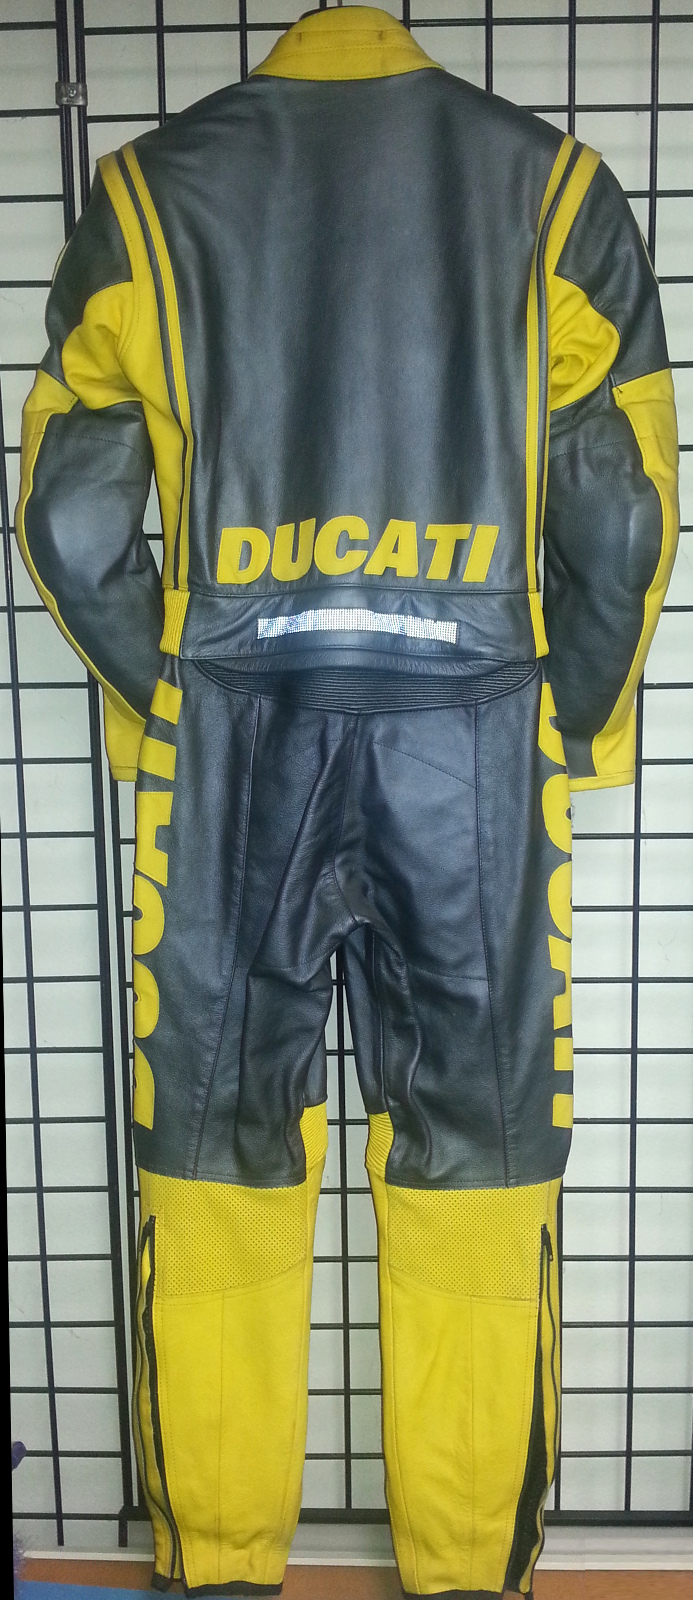 Ducati Dainese Luce Lady 2 piece leather motorcycle yellow & silver suit Rear view